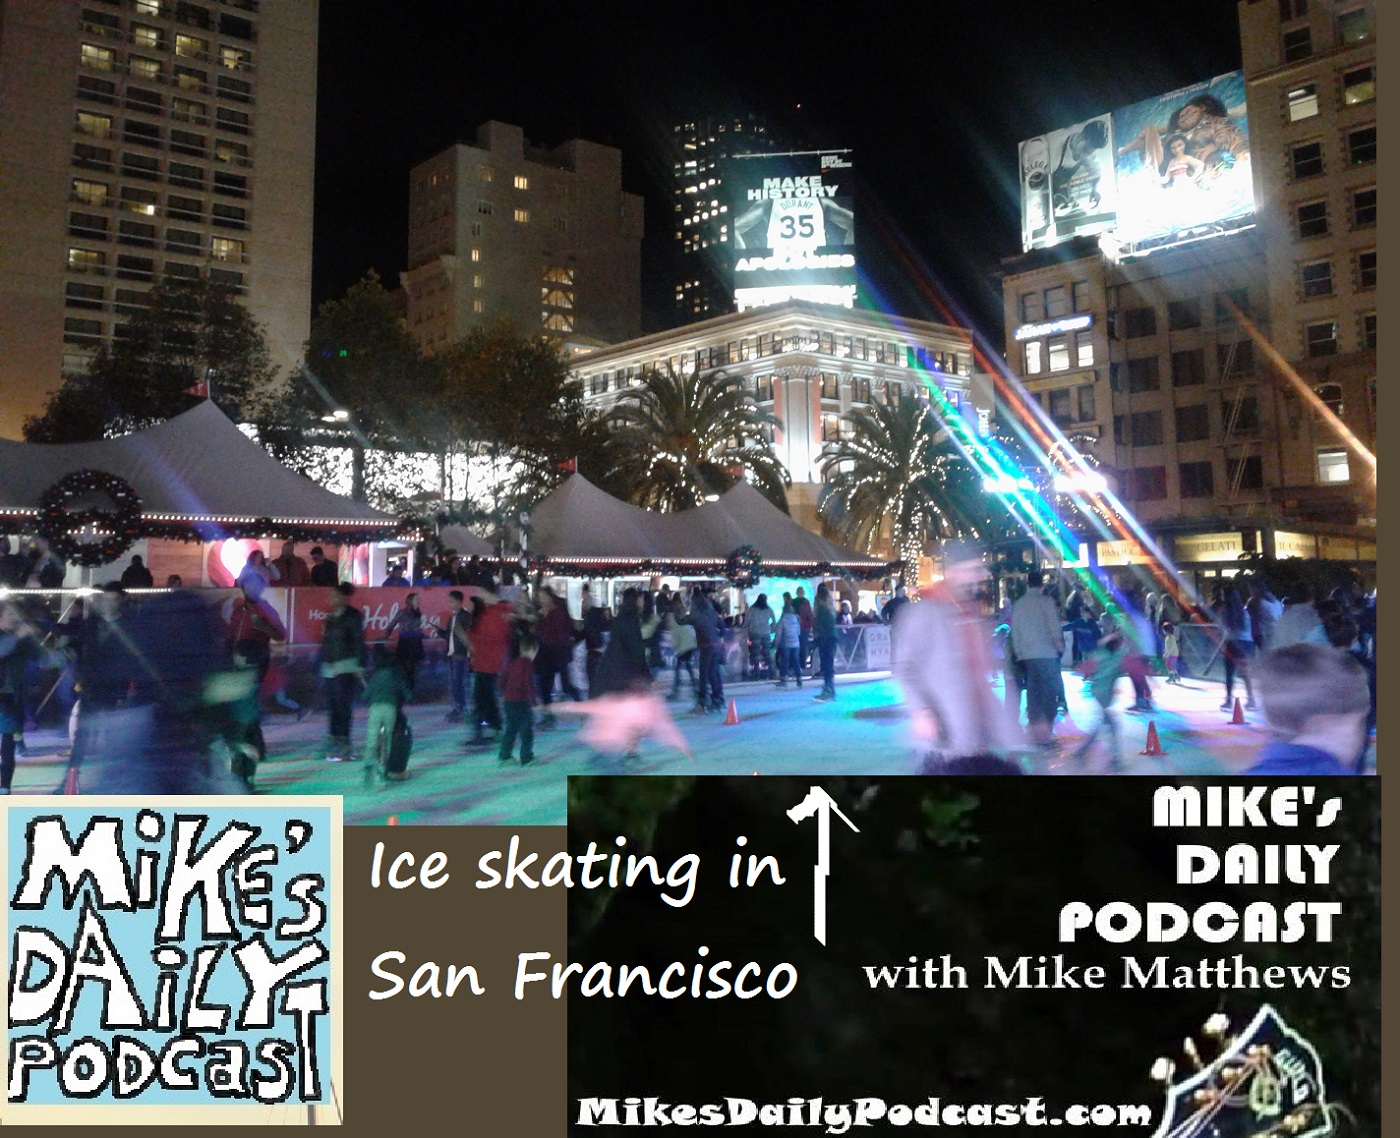 mikes-daily-podcast-1224-union-square-iceskating